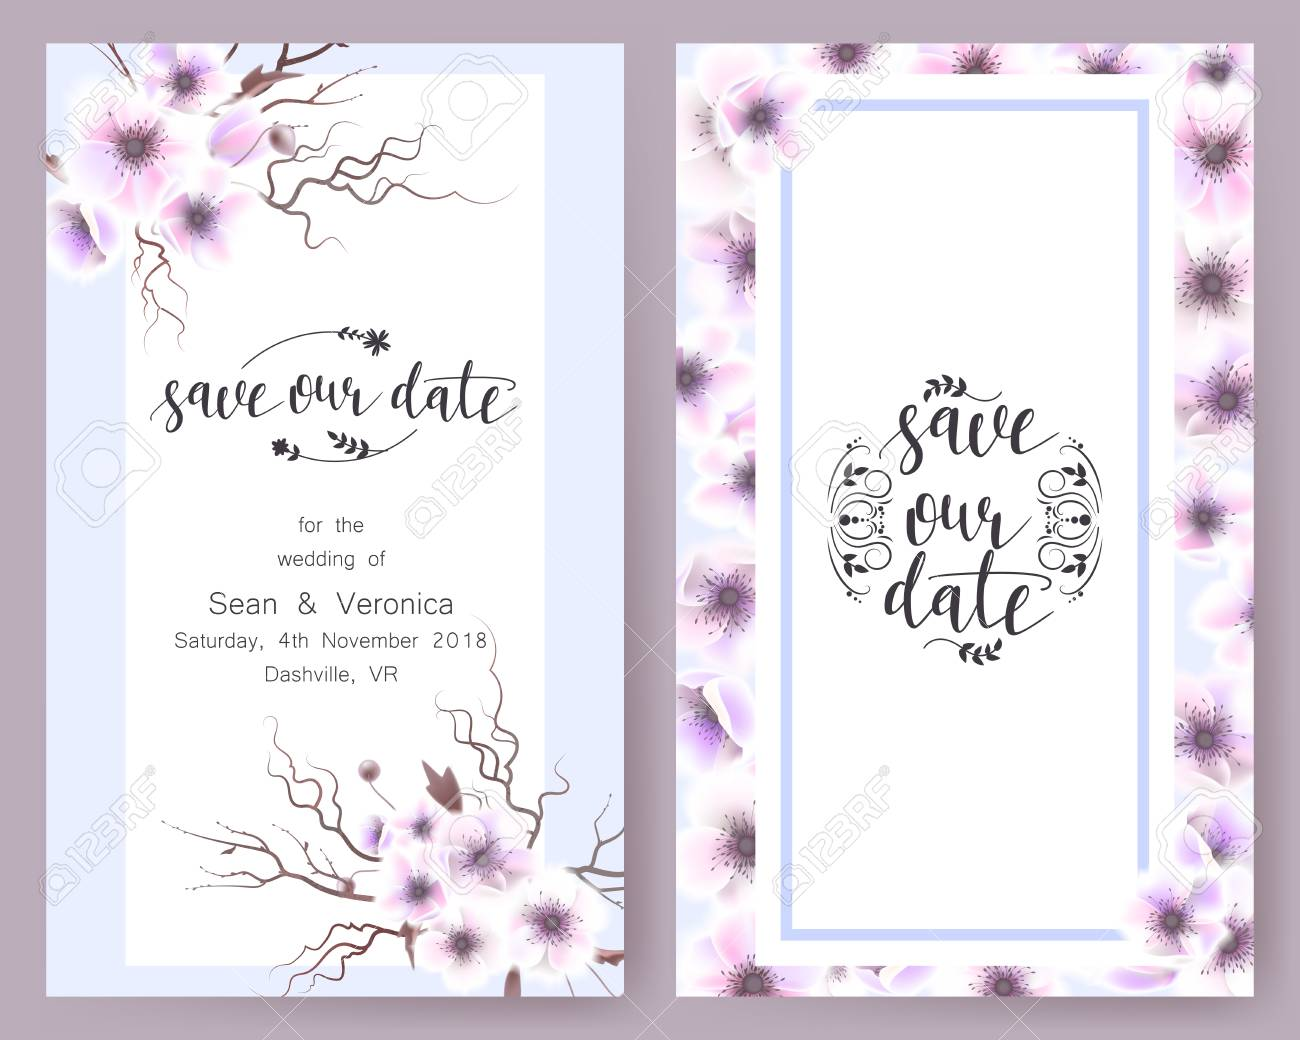 Save the date card wedding invitation greeting card with beautiful banco de imagens save the date card wedding invitation greeting card with beautiful flowers and letters stopboris Image collections